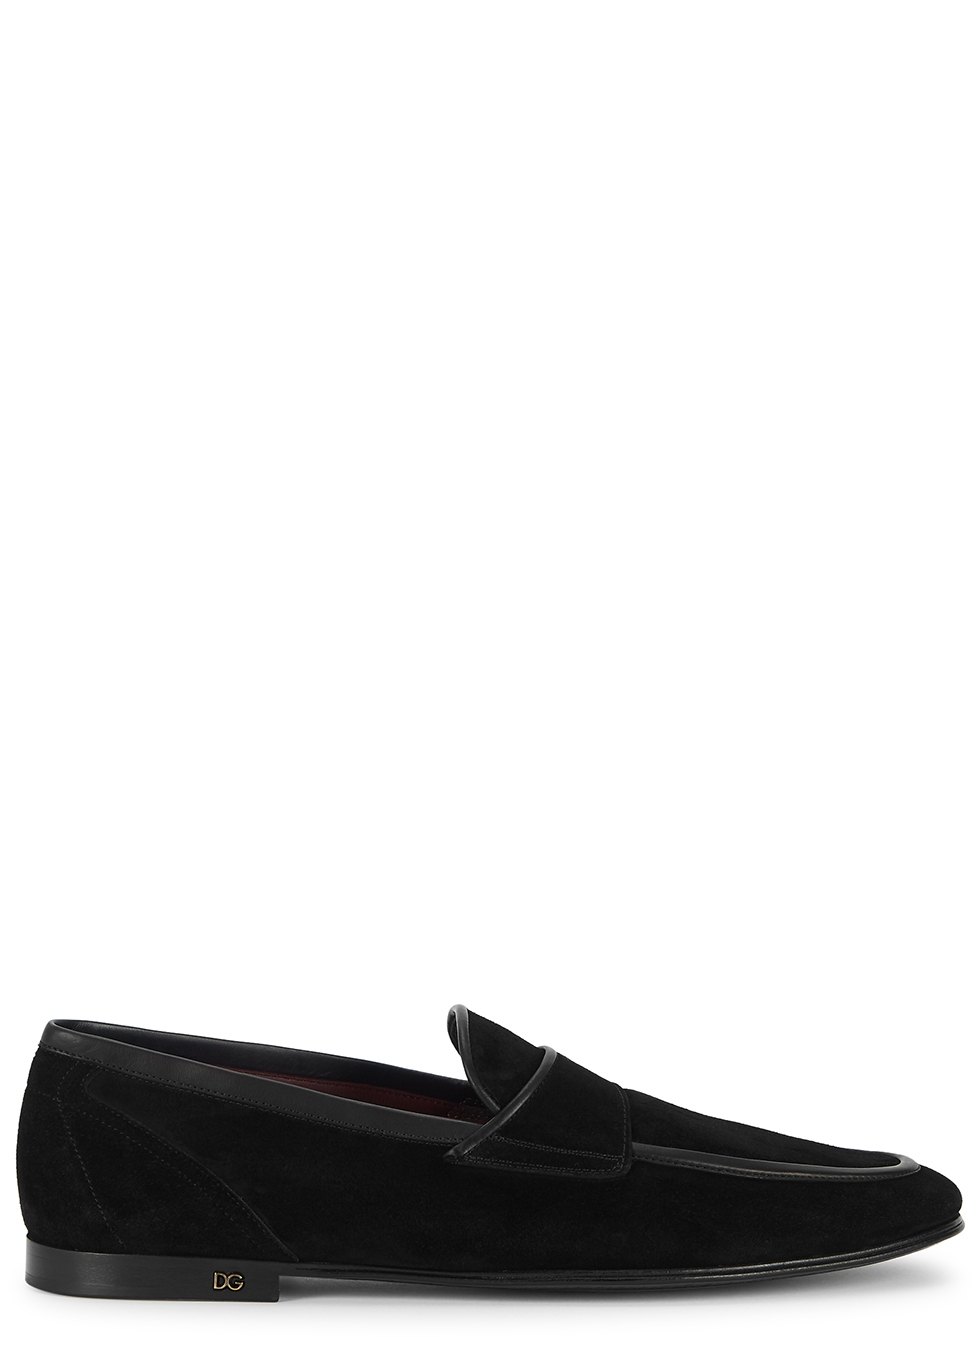 Erice black suede loafers